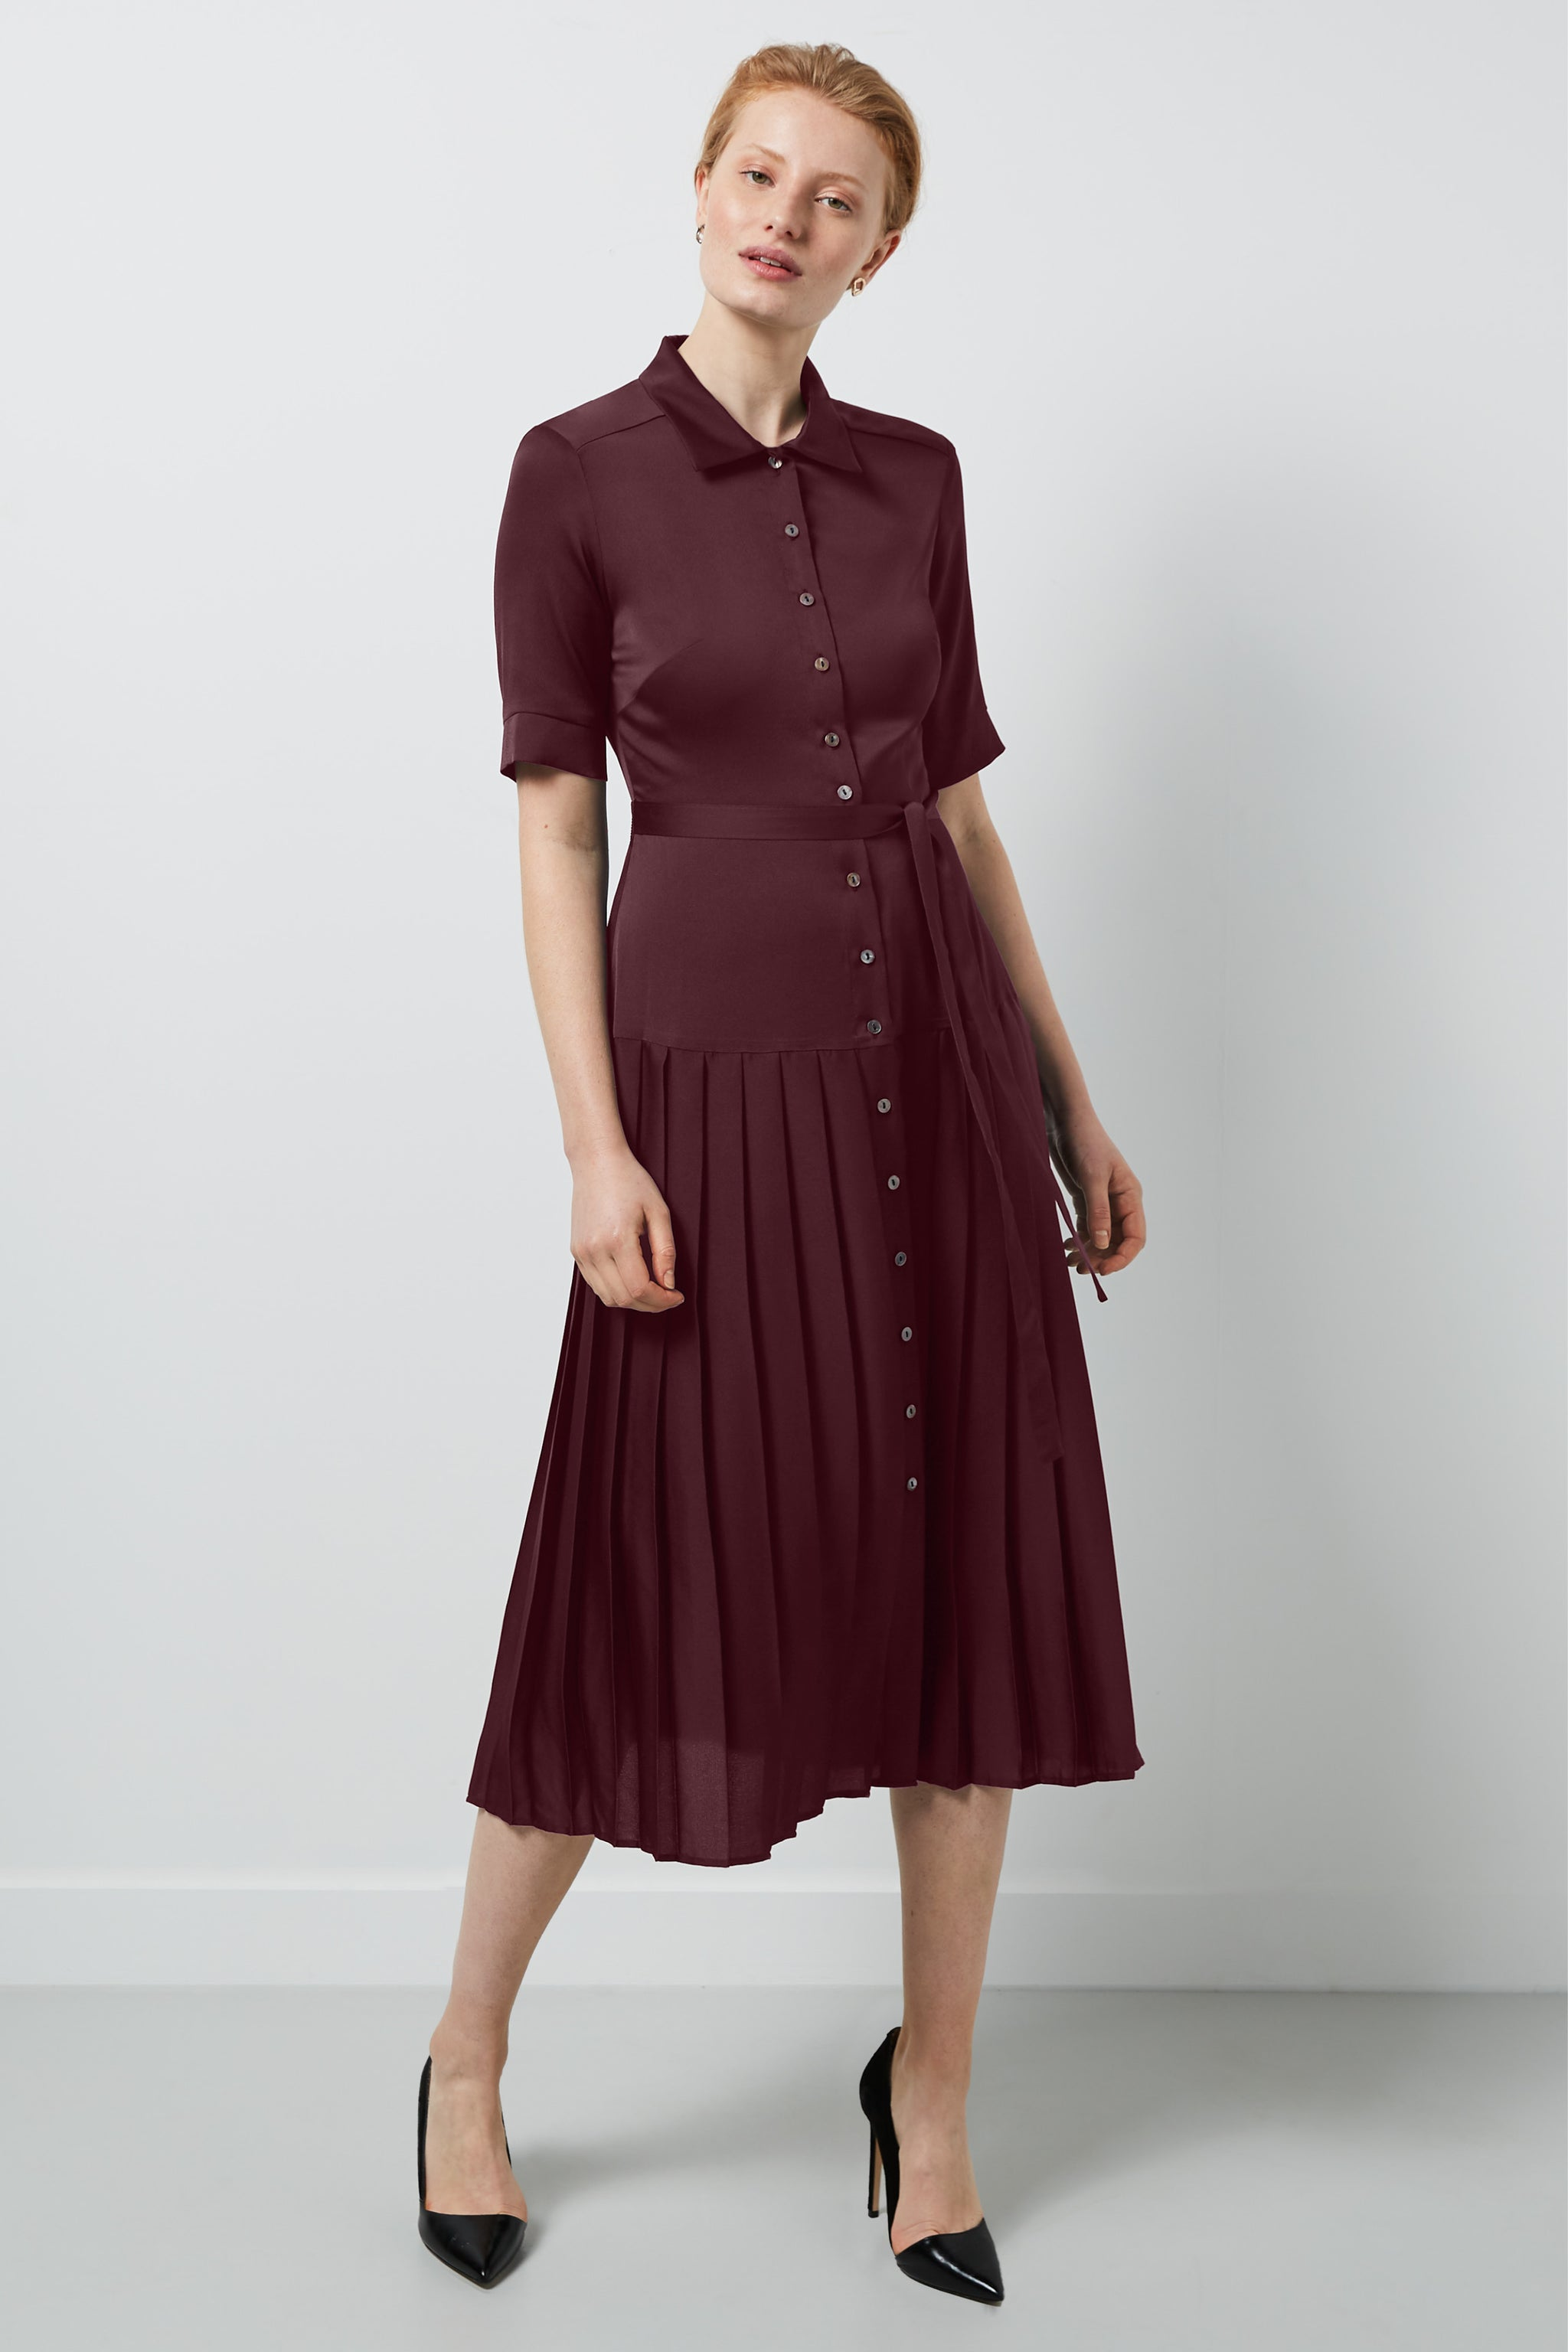 Tavistock Burgundy Shirt Dress